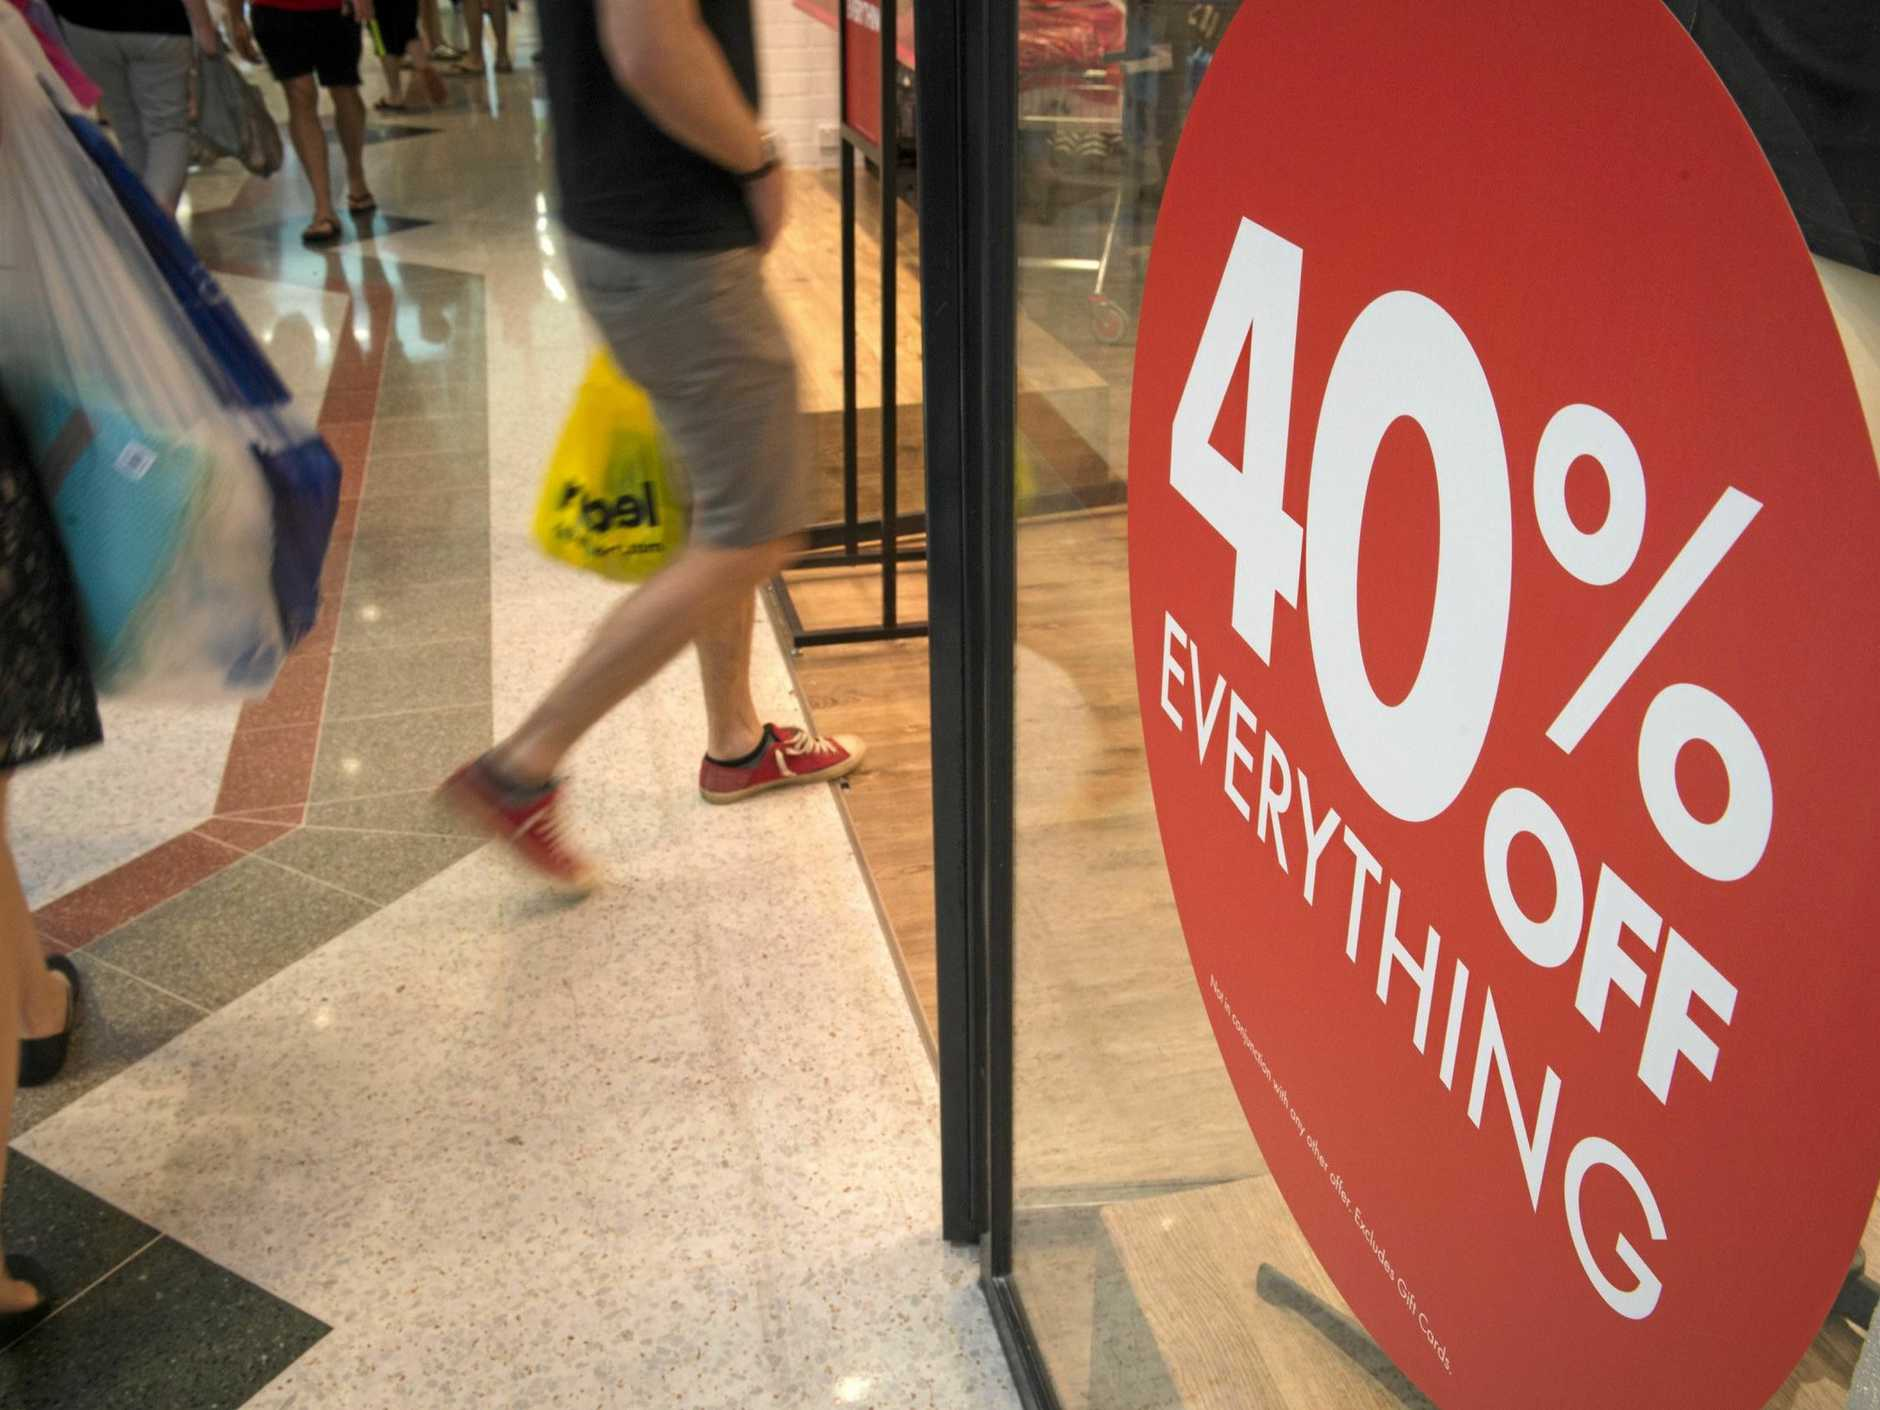 BARGAIN: Shoppers are expected to be out in force today to take advantage of massive discounts.